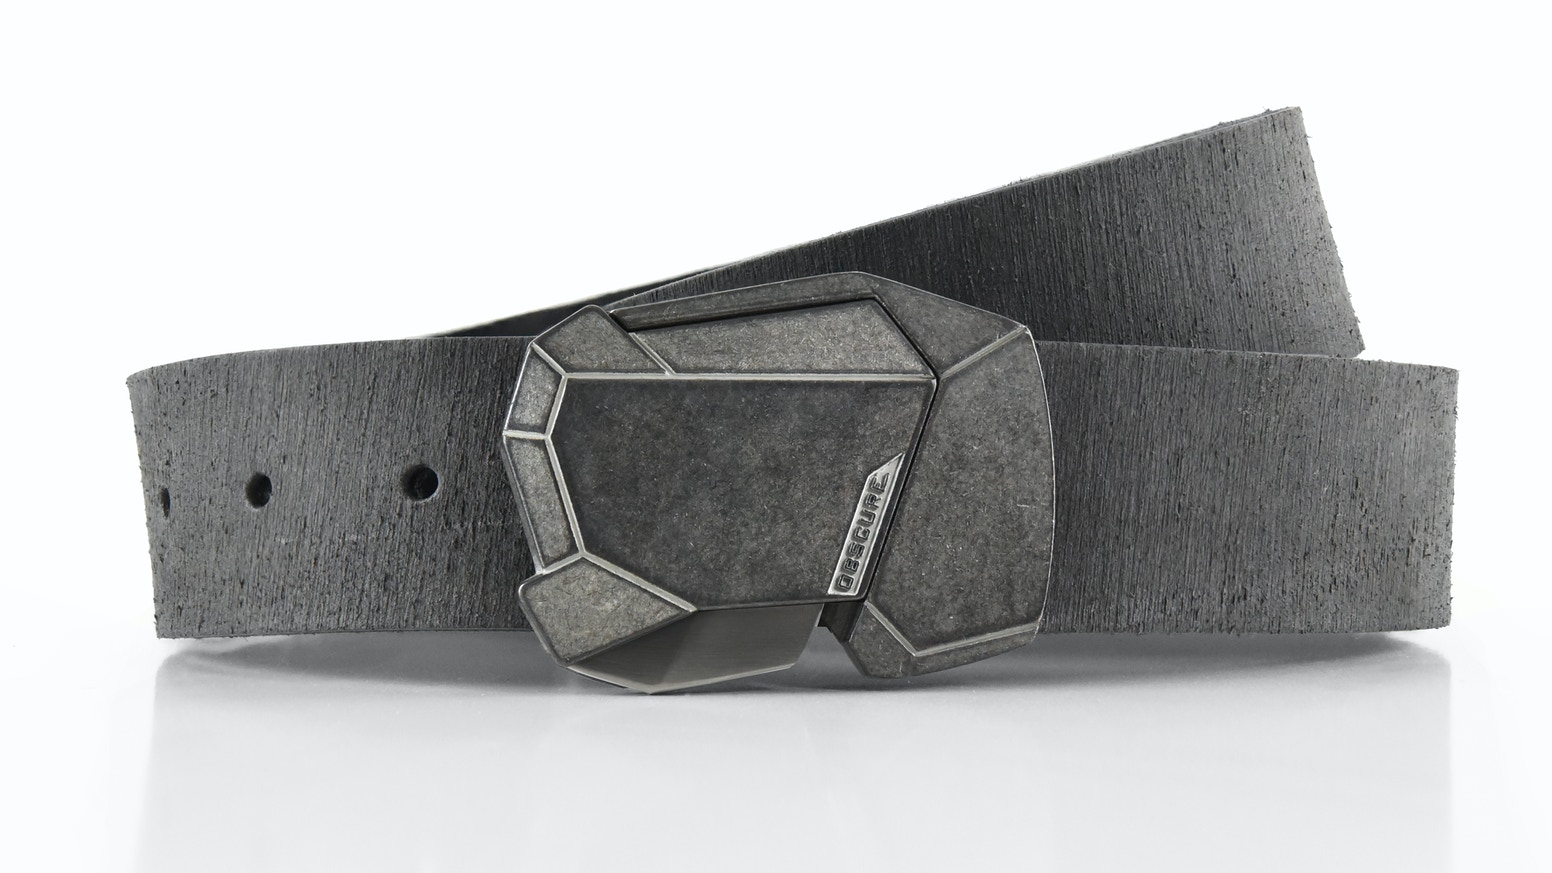 A futuristic buckle with a simple quick-release button. Hand-cut leather from Milwaukee, WI. The most awesome belt you'll ever own.